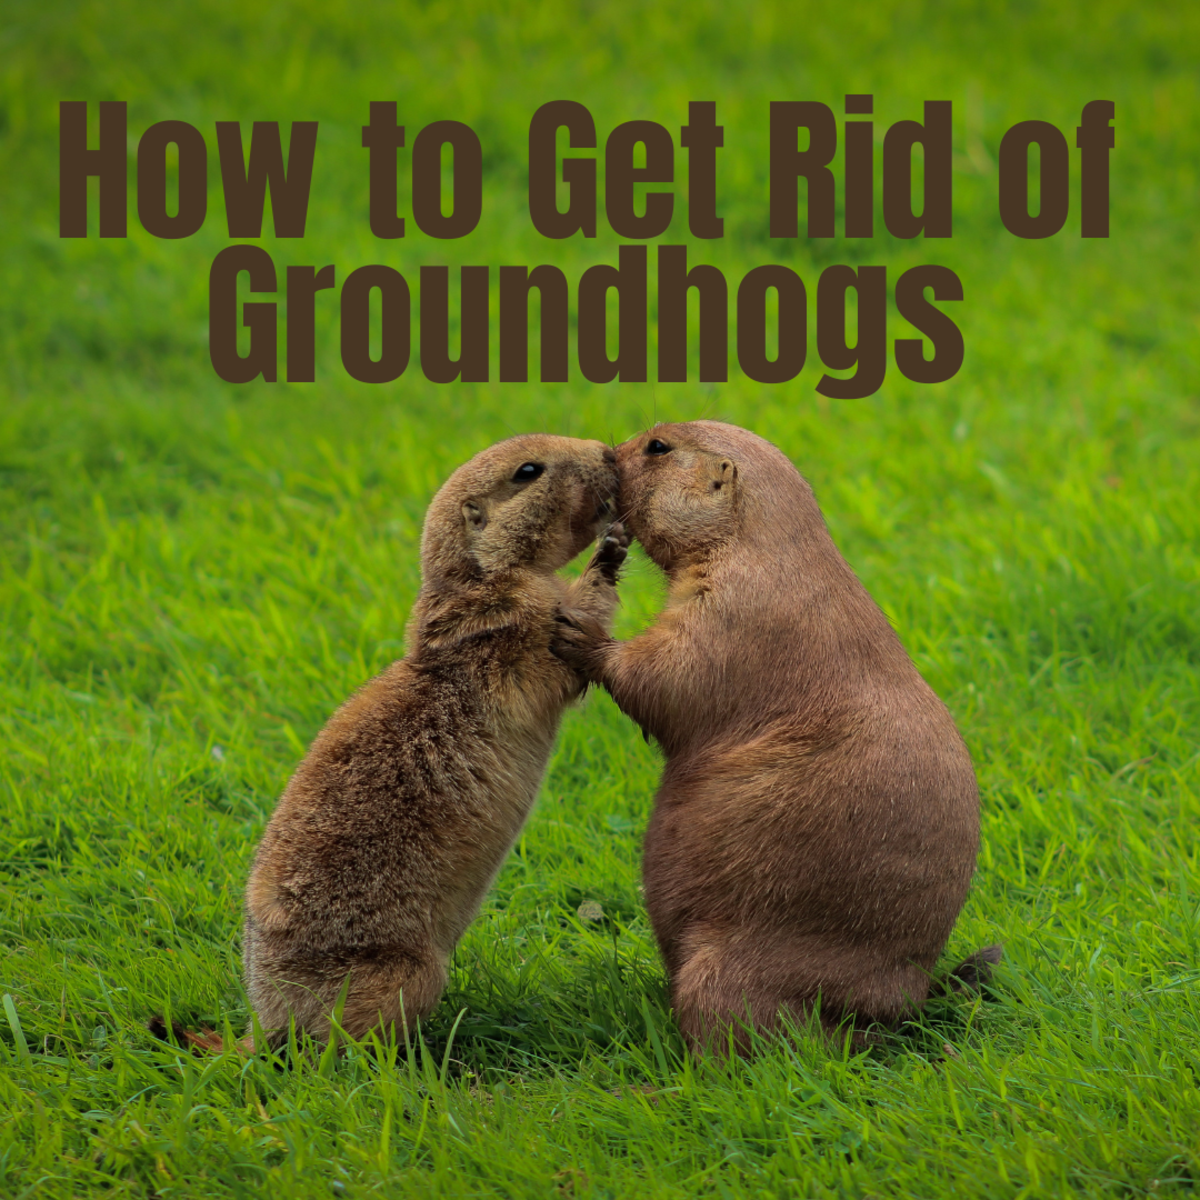 Learn how to get rid of groundhogs forever.